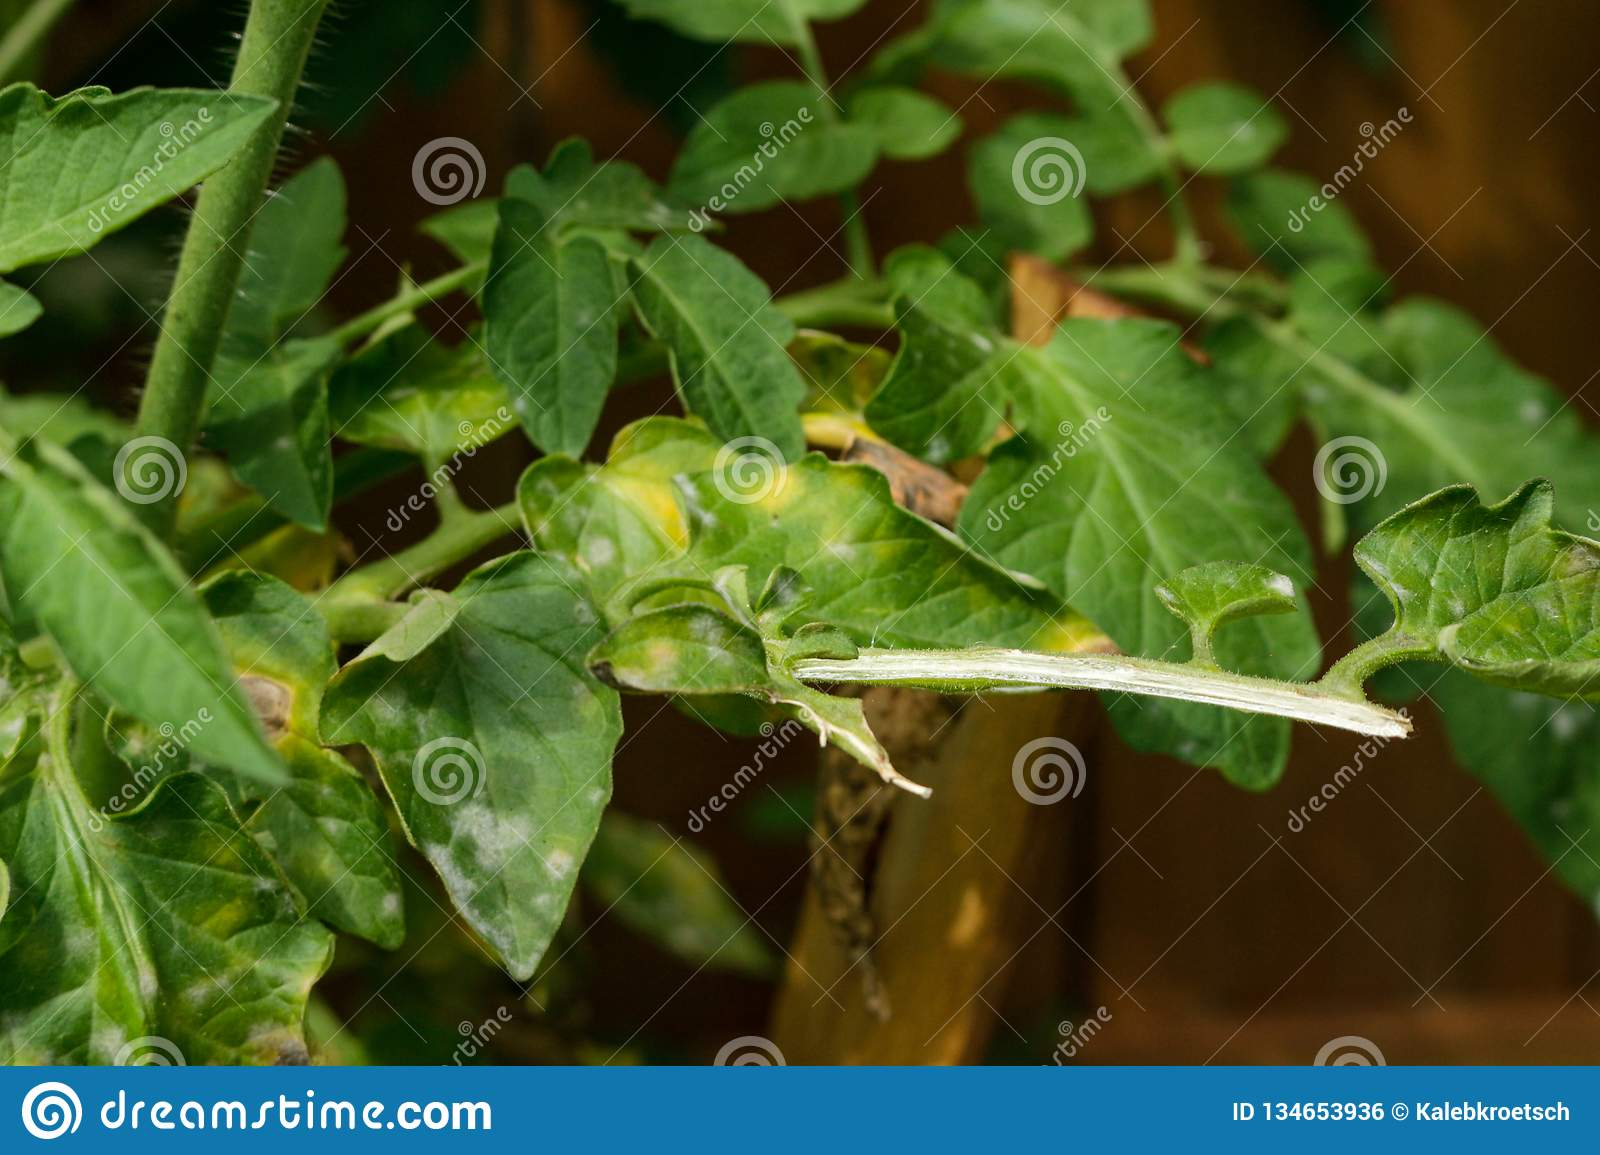 Vegetable, Tomato Plant Problems And Sickness ,too Much